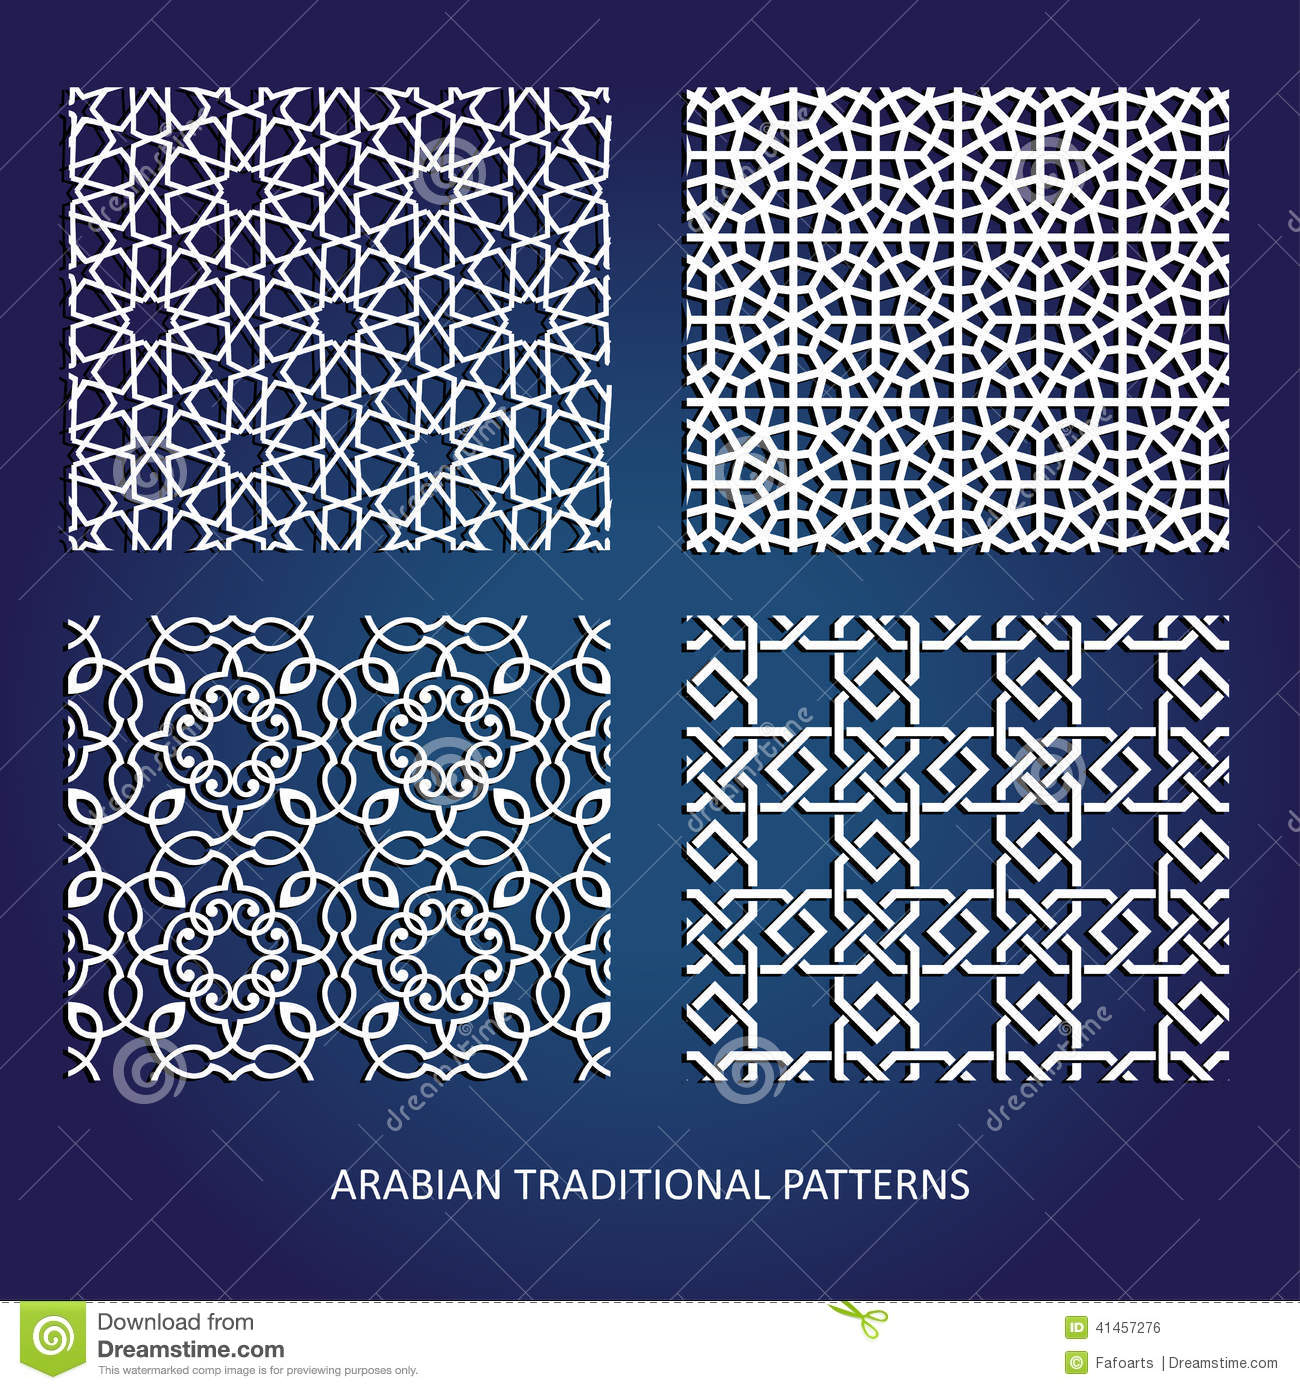 Tree coloring pages only coloring pages - Arabian Patterns Stock Illustration Image 41457276